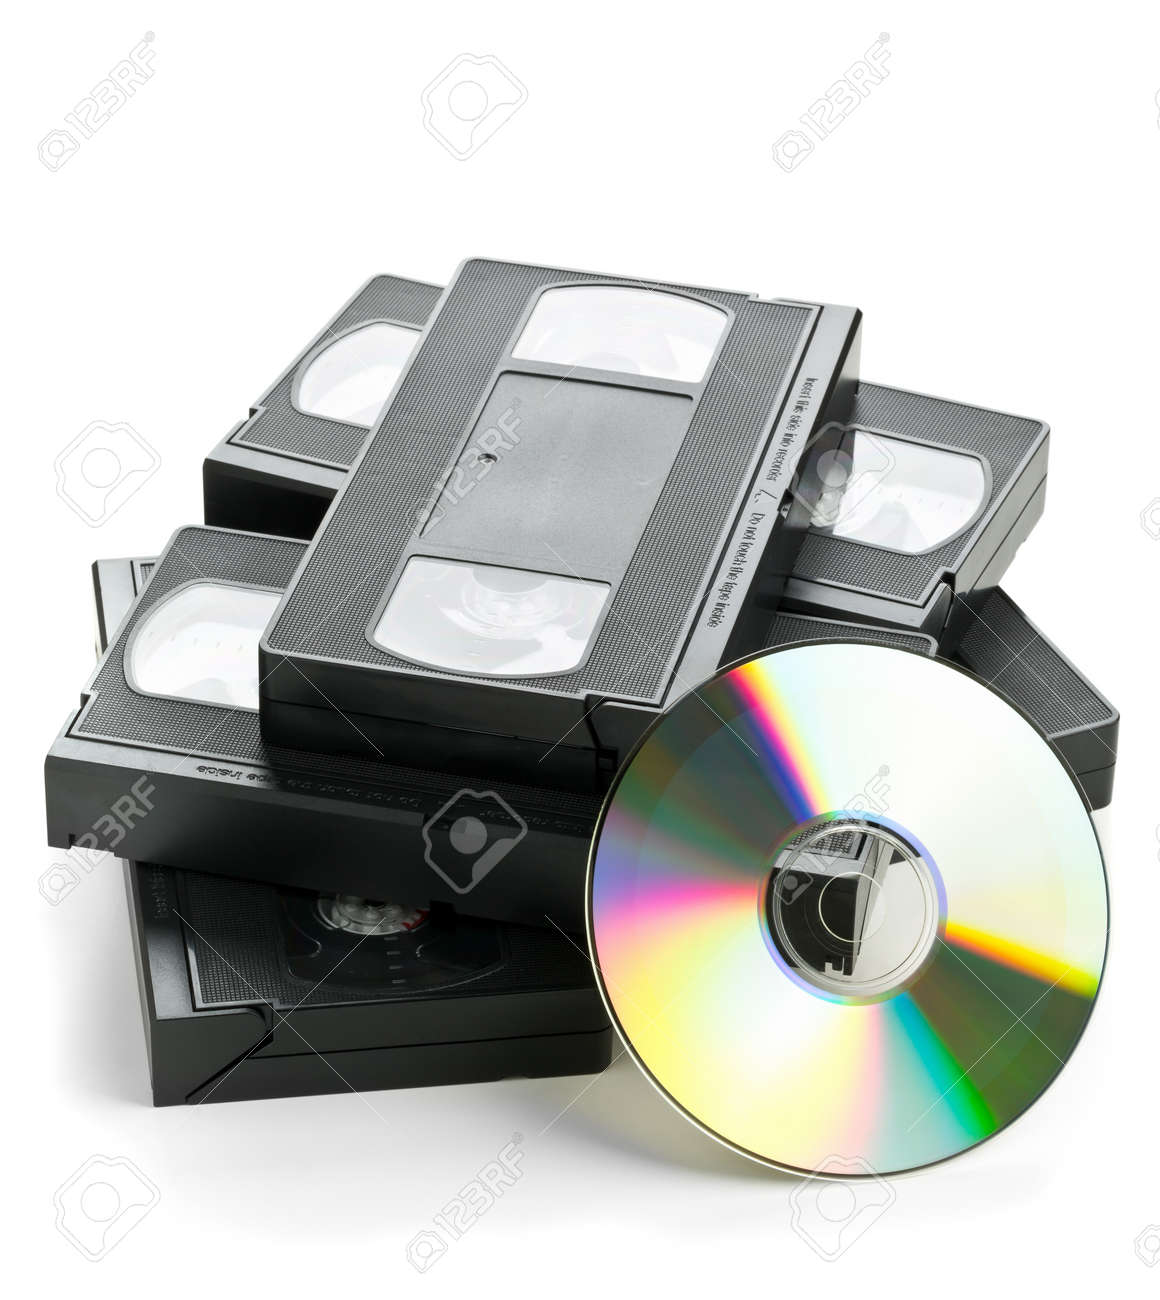 Heap of analog video cassettes with DVD disc - old movies backup or transfer concept Standard-Bild - 43609334